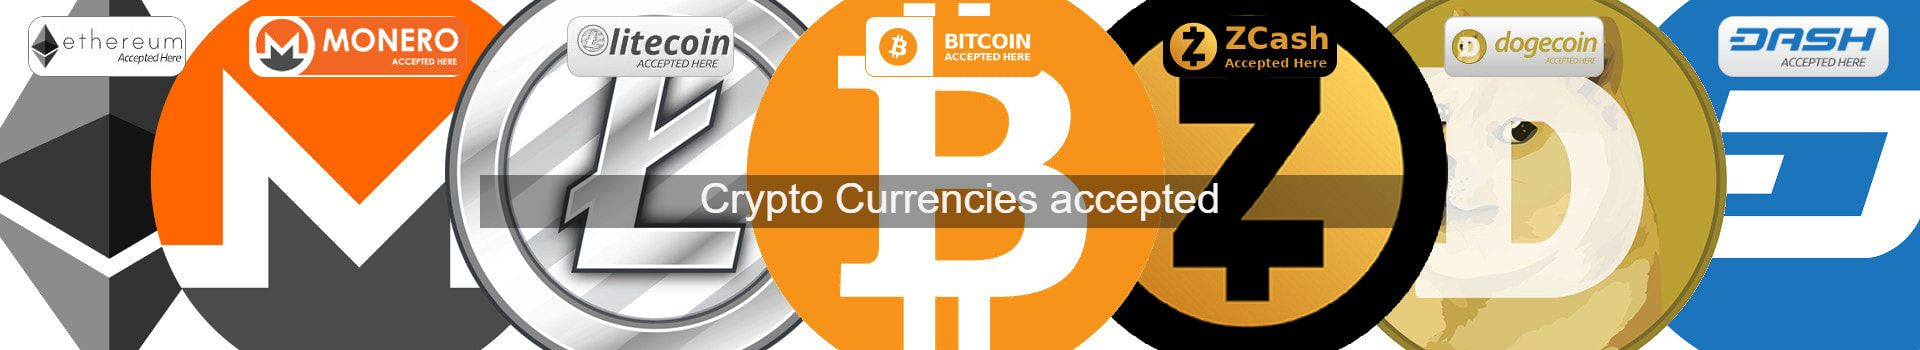 Crypto currencies accepted here